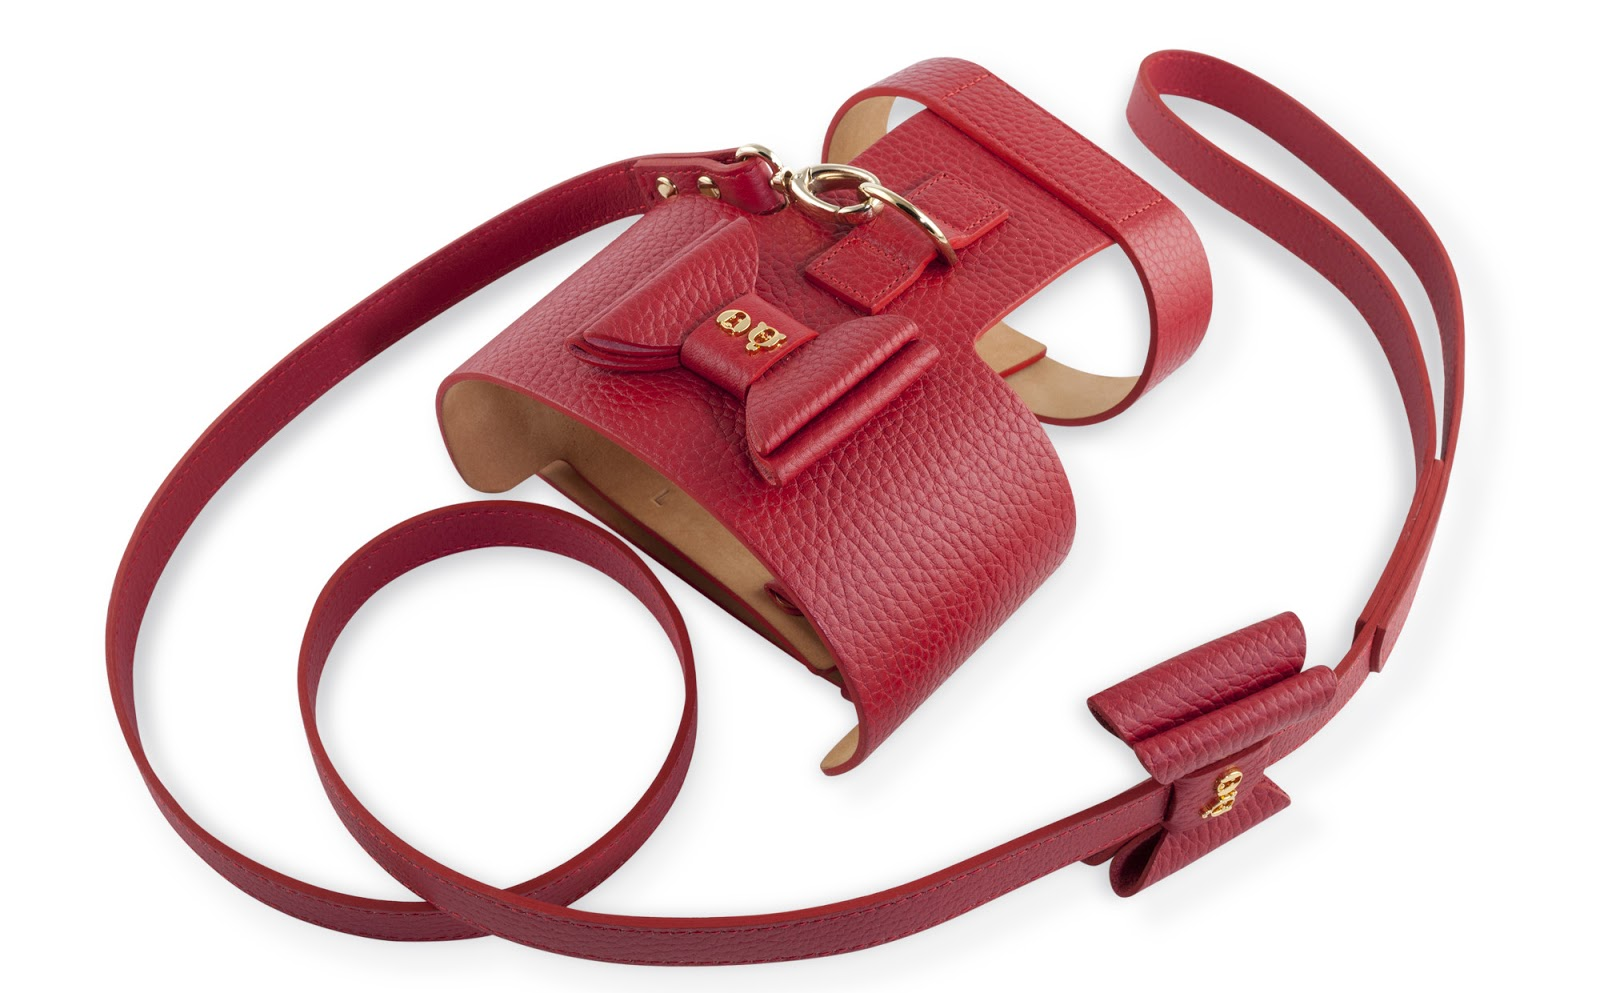 Moshiqa Bijou Leather Dog Harness Red